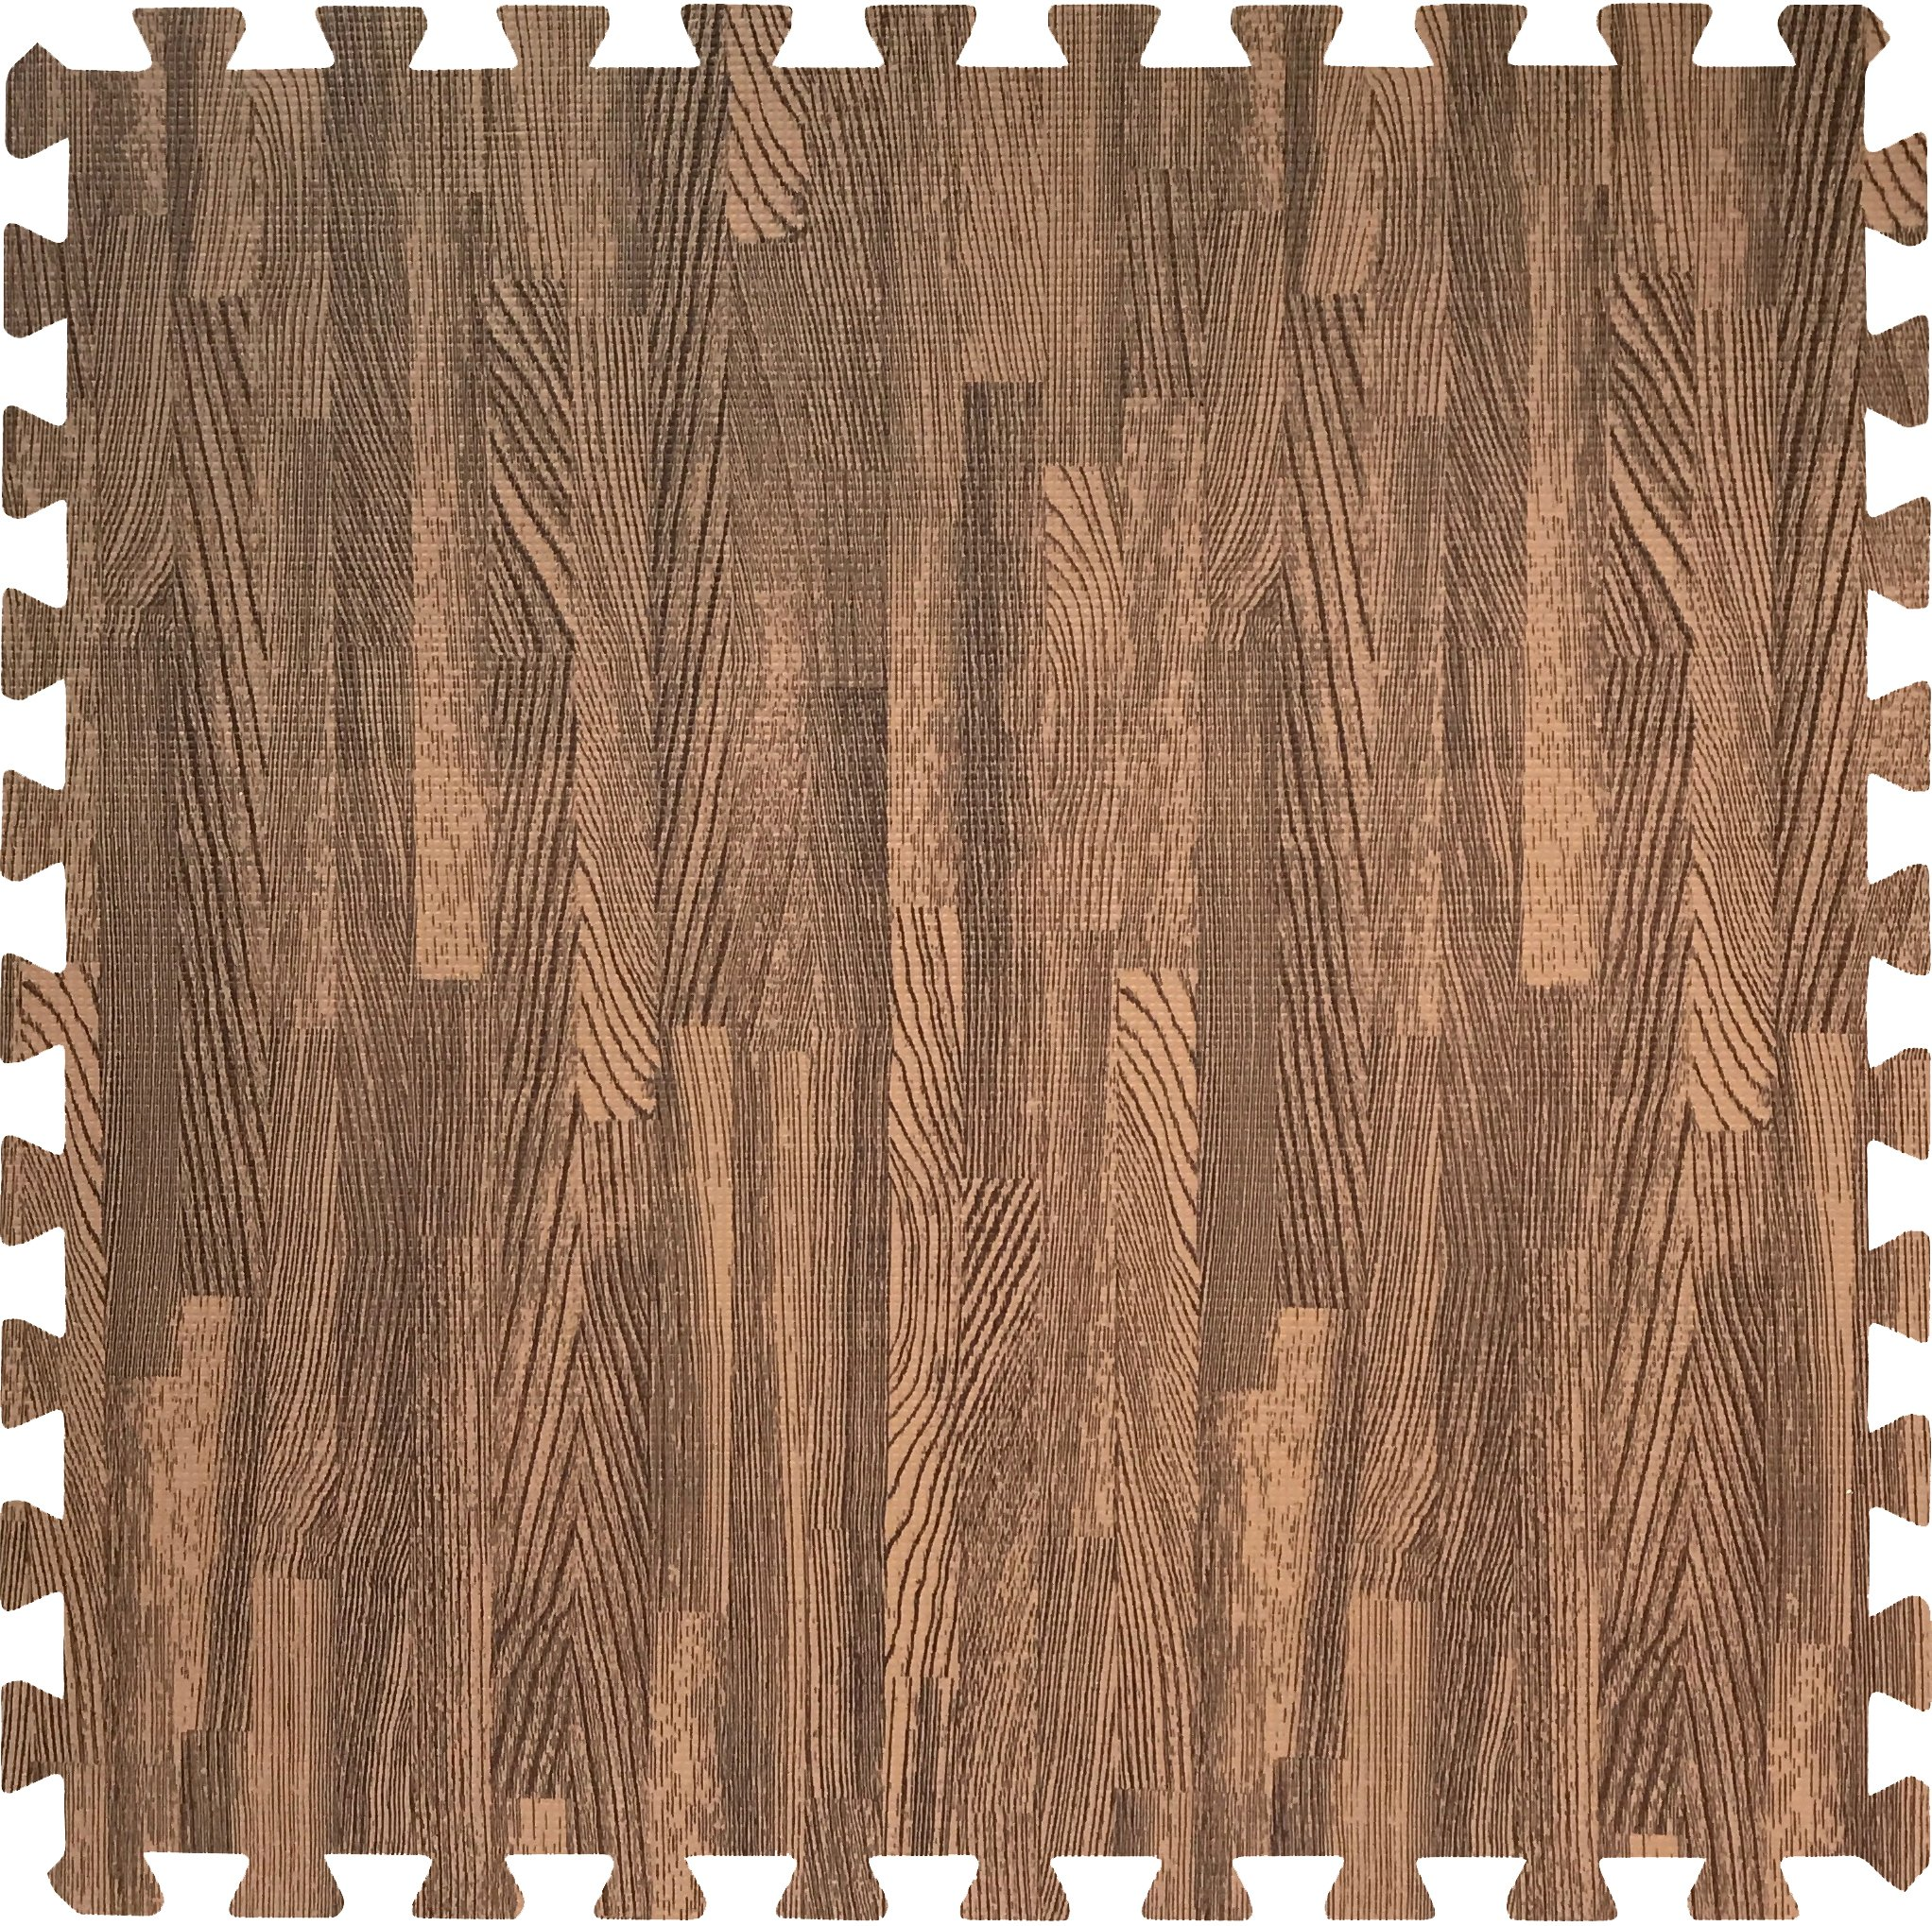 Sorbus Wood Floor Mats Foam Interlocking Wood Mats Each Tile 4 Square Feet 3/8-Inch Thick Puzzle Wood Tiles with Borders – for Home Office Playroom Basement (12 Tiles 48 Sq ft, Wood Grain - Dark) by Sorbus (Image #2)